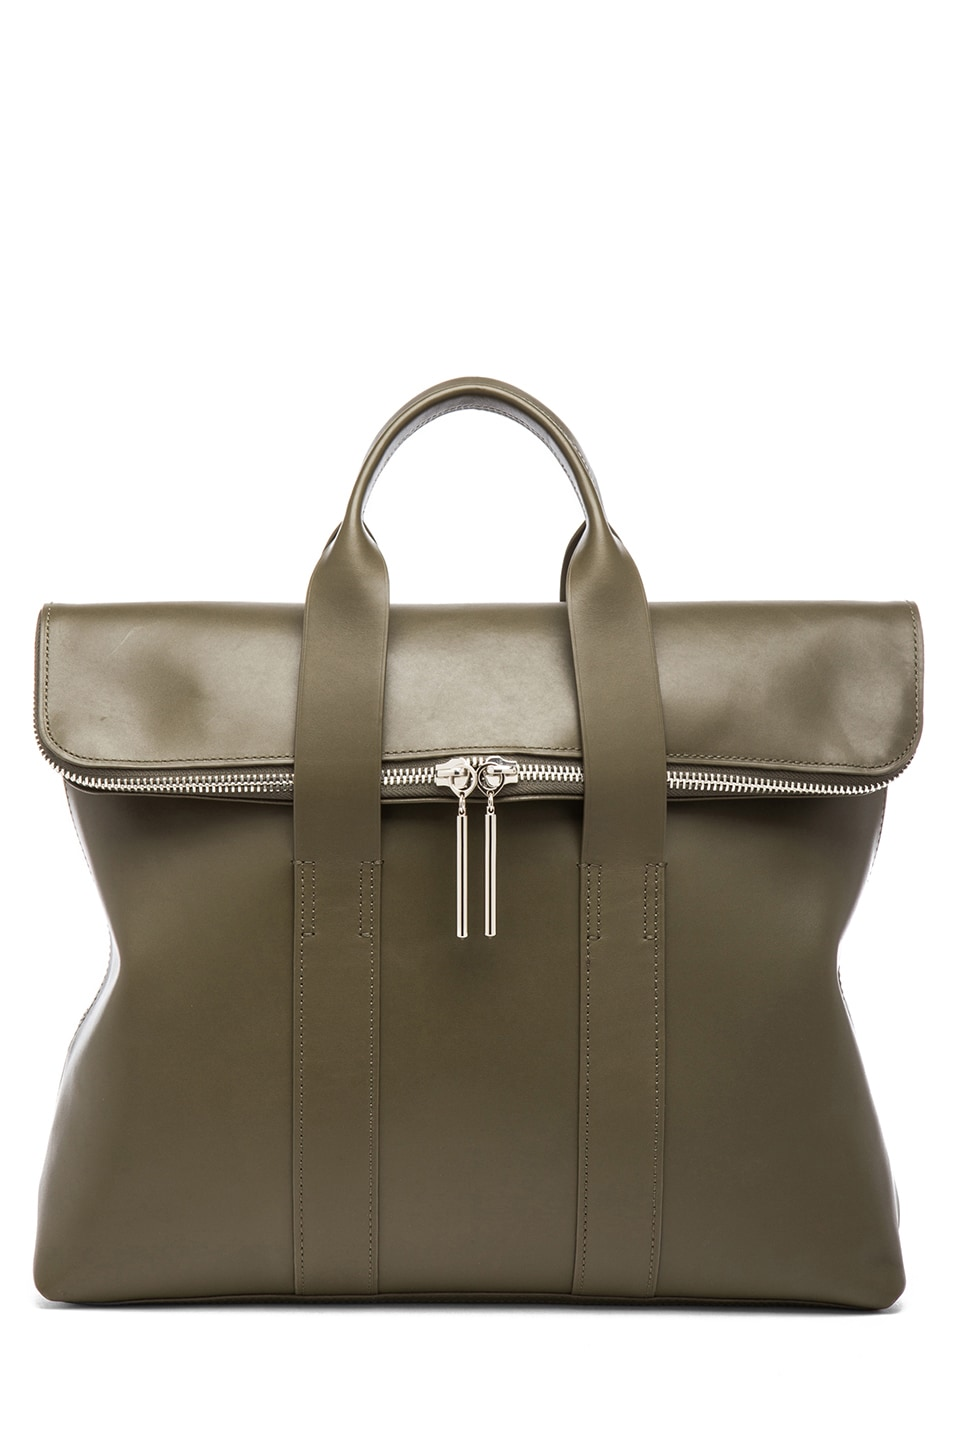 Image 1 of 3.1 phillip lim 31 Hour Bag in Dark Olive